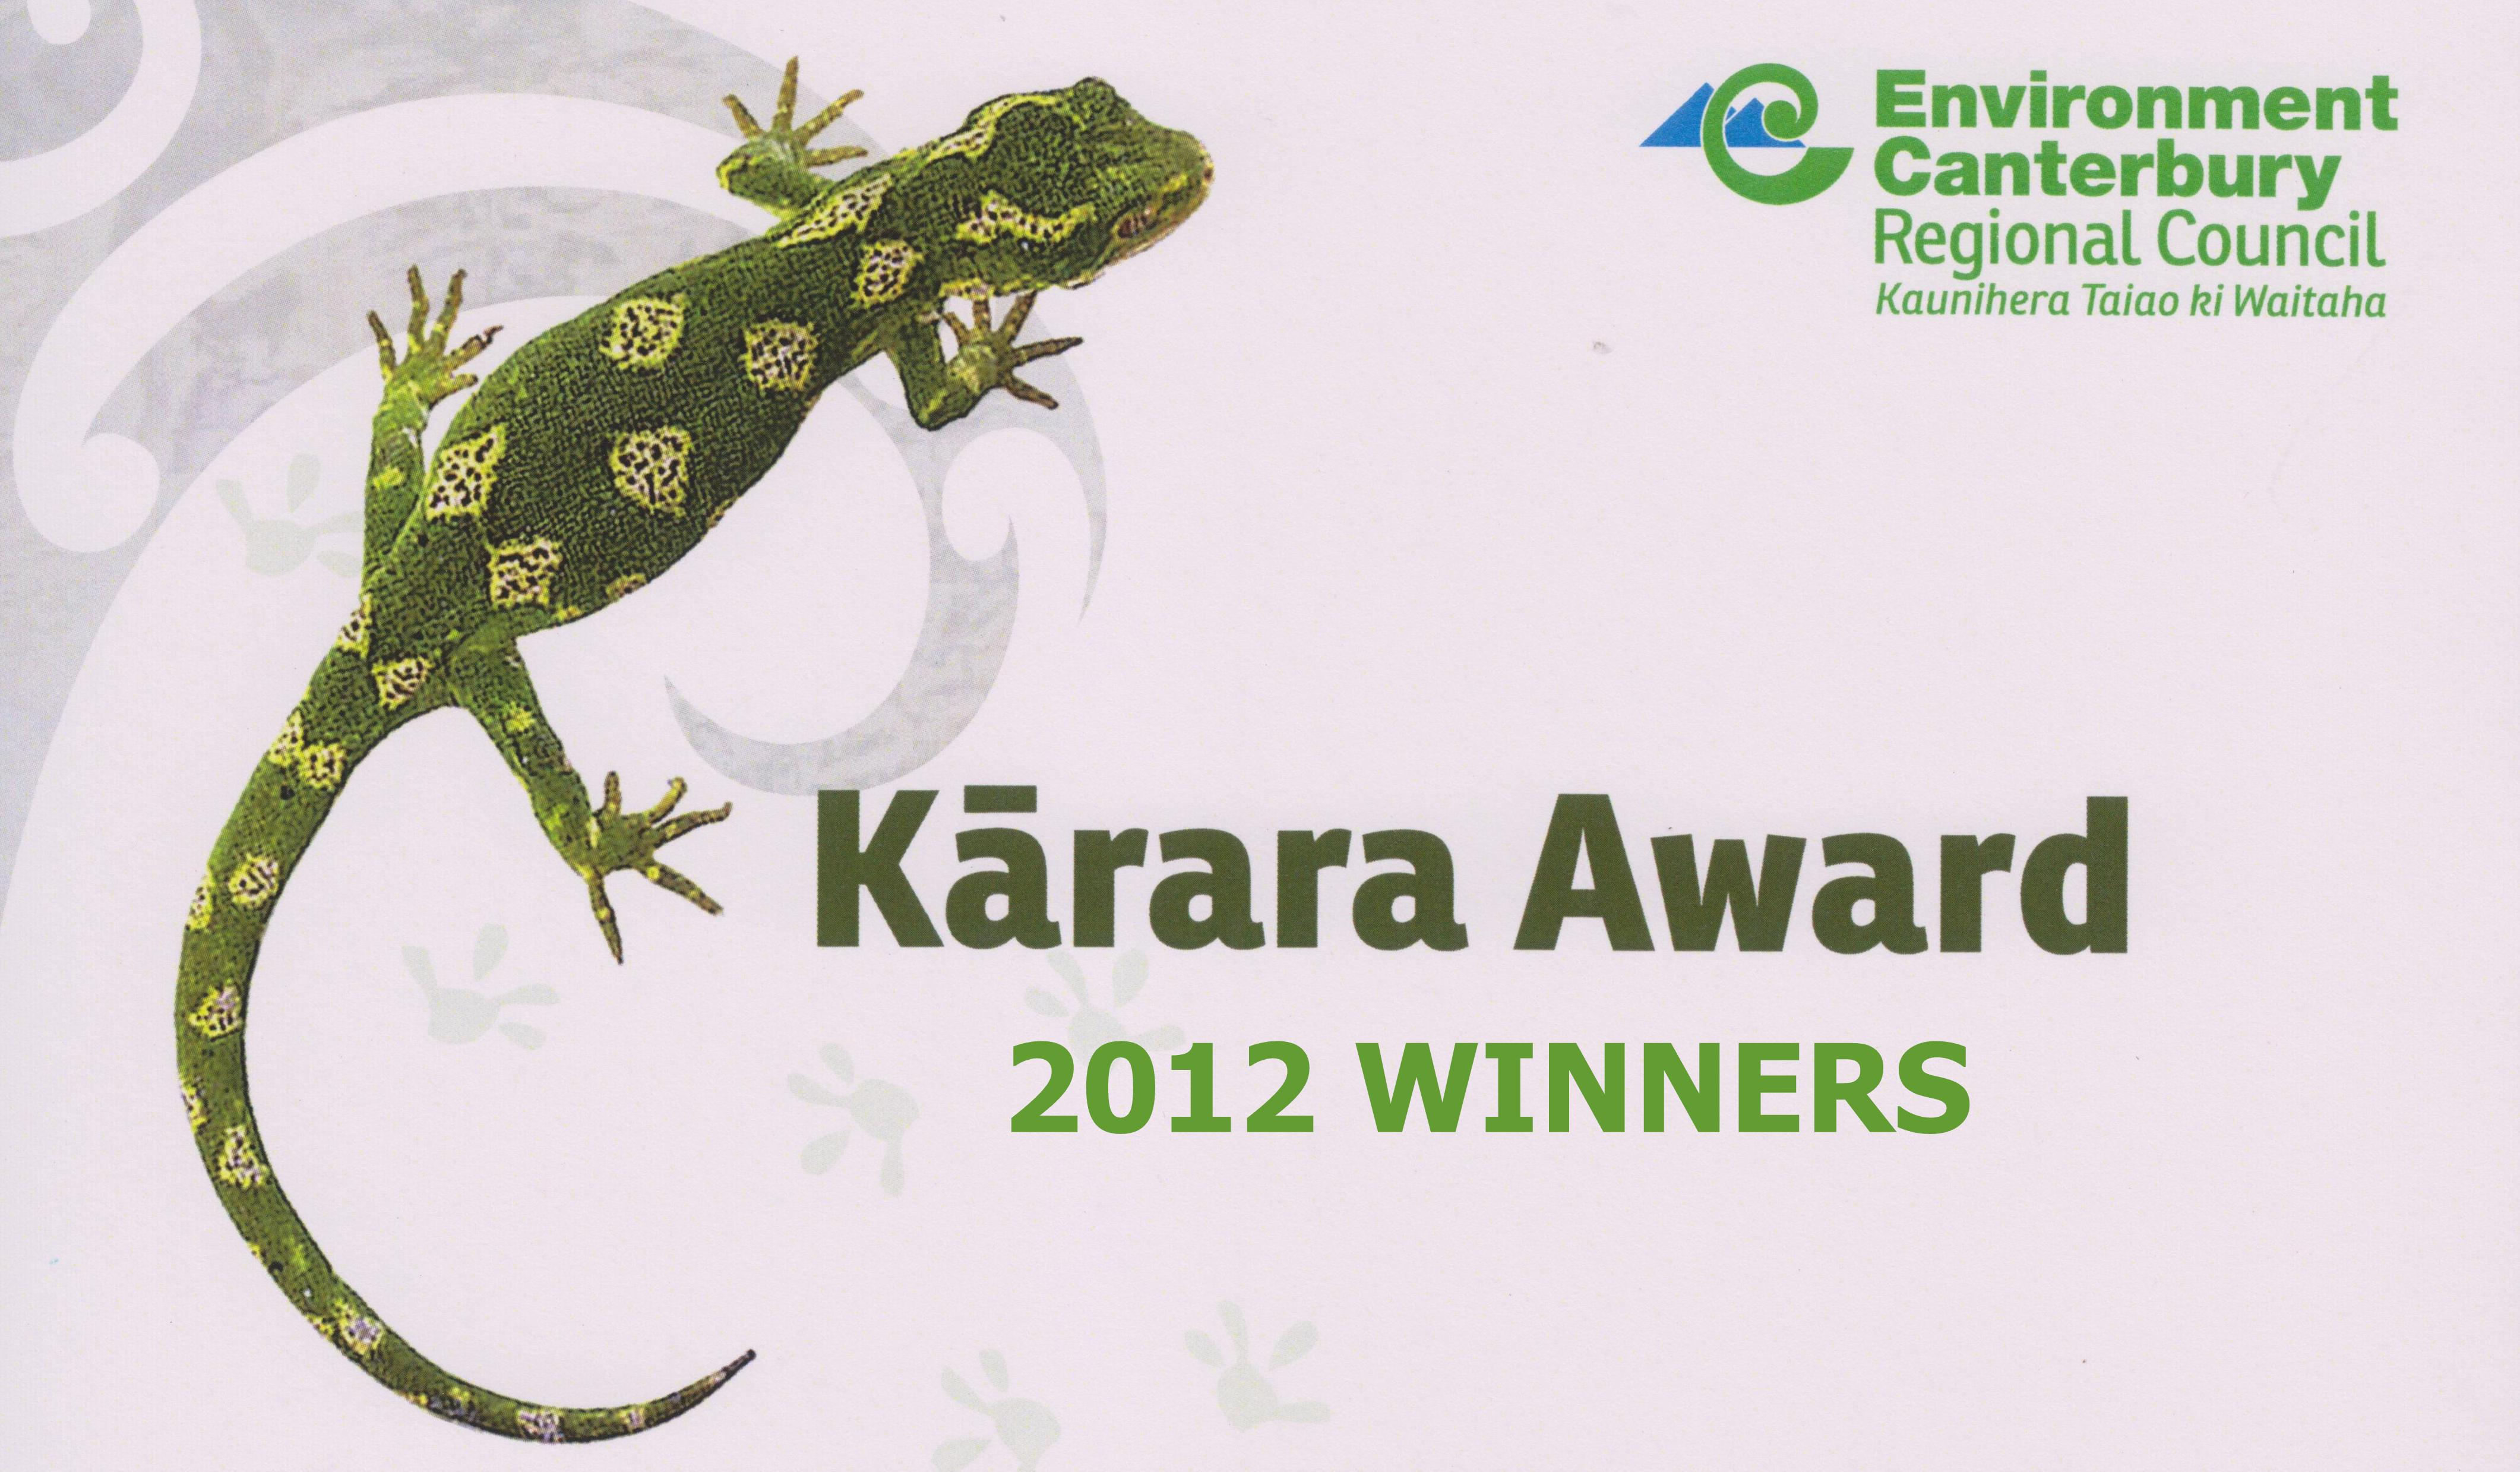 cropped version of KARARA AWARD 2012